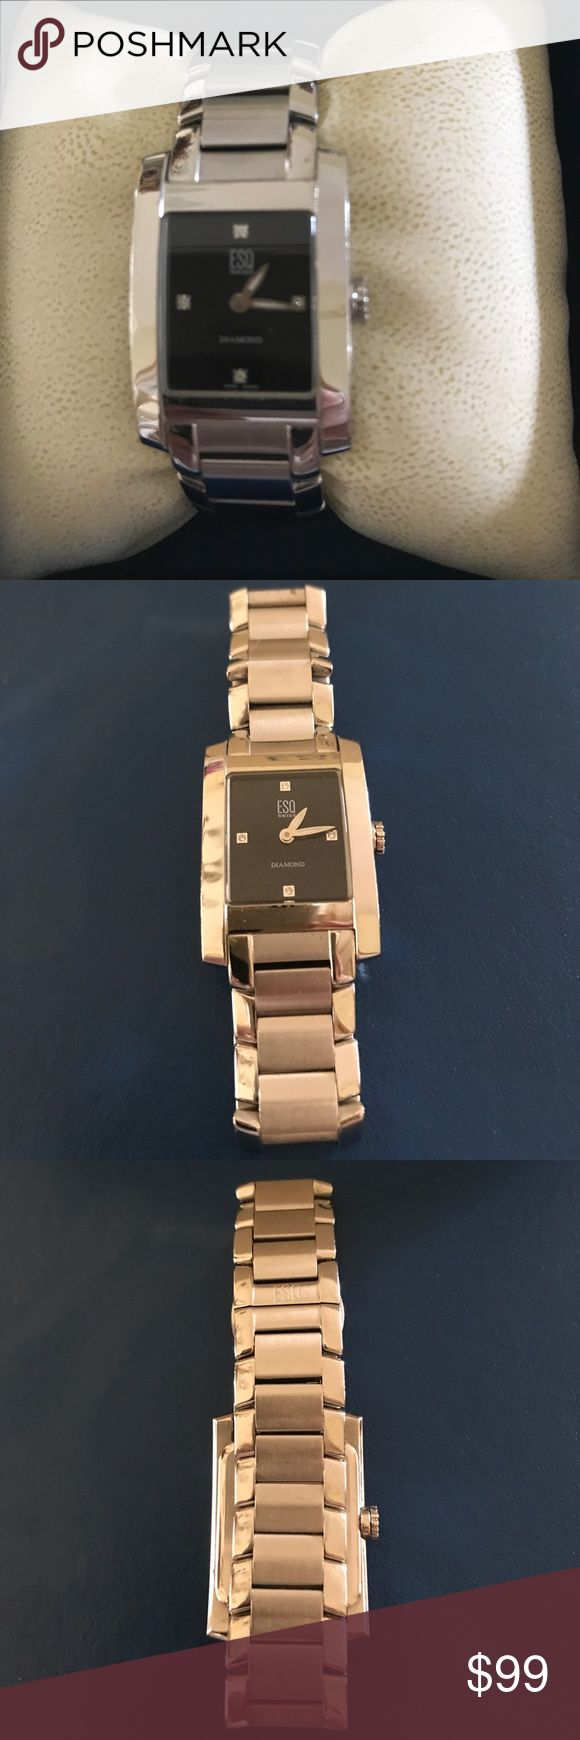 🔴💯ELEGANT ESQ WATCH. 🔴THIS BEAUTIFUL WATCH HAS A BLACK FACE WITH DIAMONDS ACCENTS ON THE 12, 3, 6 and 9. BRUSHED STAINLESS IN COMBINATION WITH GLOSSY STAINLESS. 6.5 CIRCUMFERENCE. COMES WITH BOX. BRAND NEW BATTERY.  SWISS MADE. SOME PHOTOS THE WATCH APPEAR GOLD TONE. IT IS SIVER TONE STAINLESS. ESQ Accessories Watches